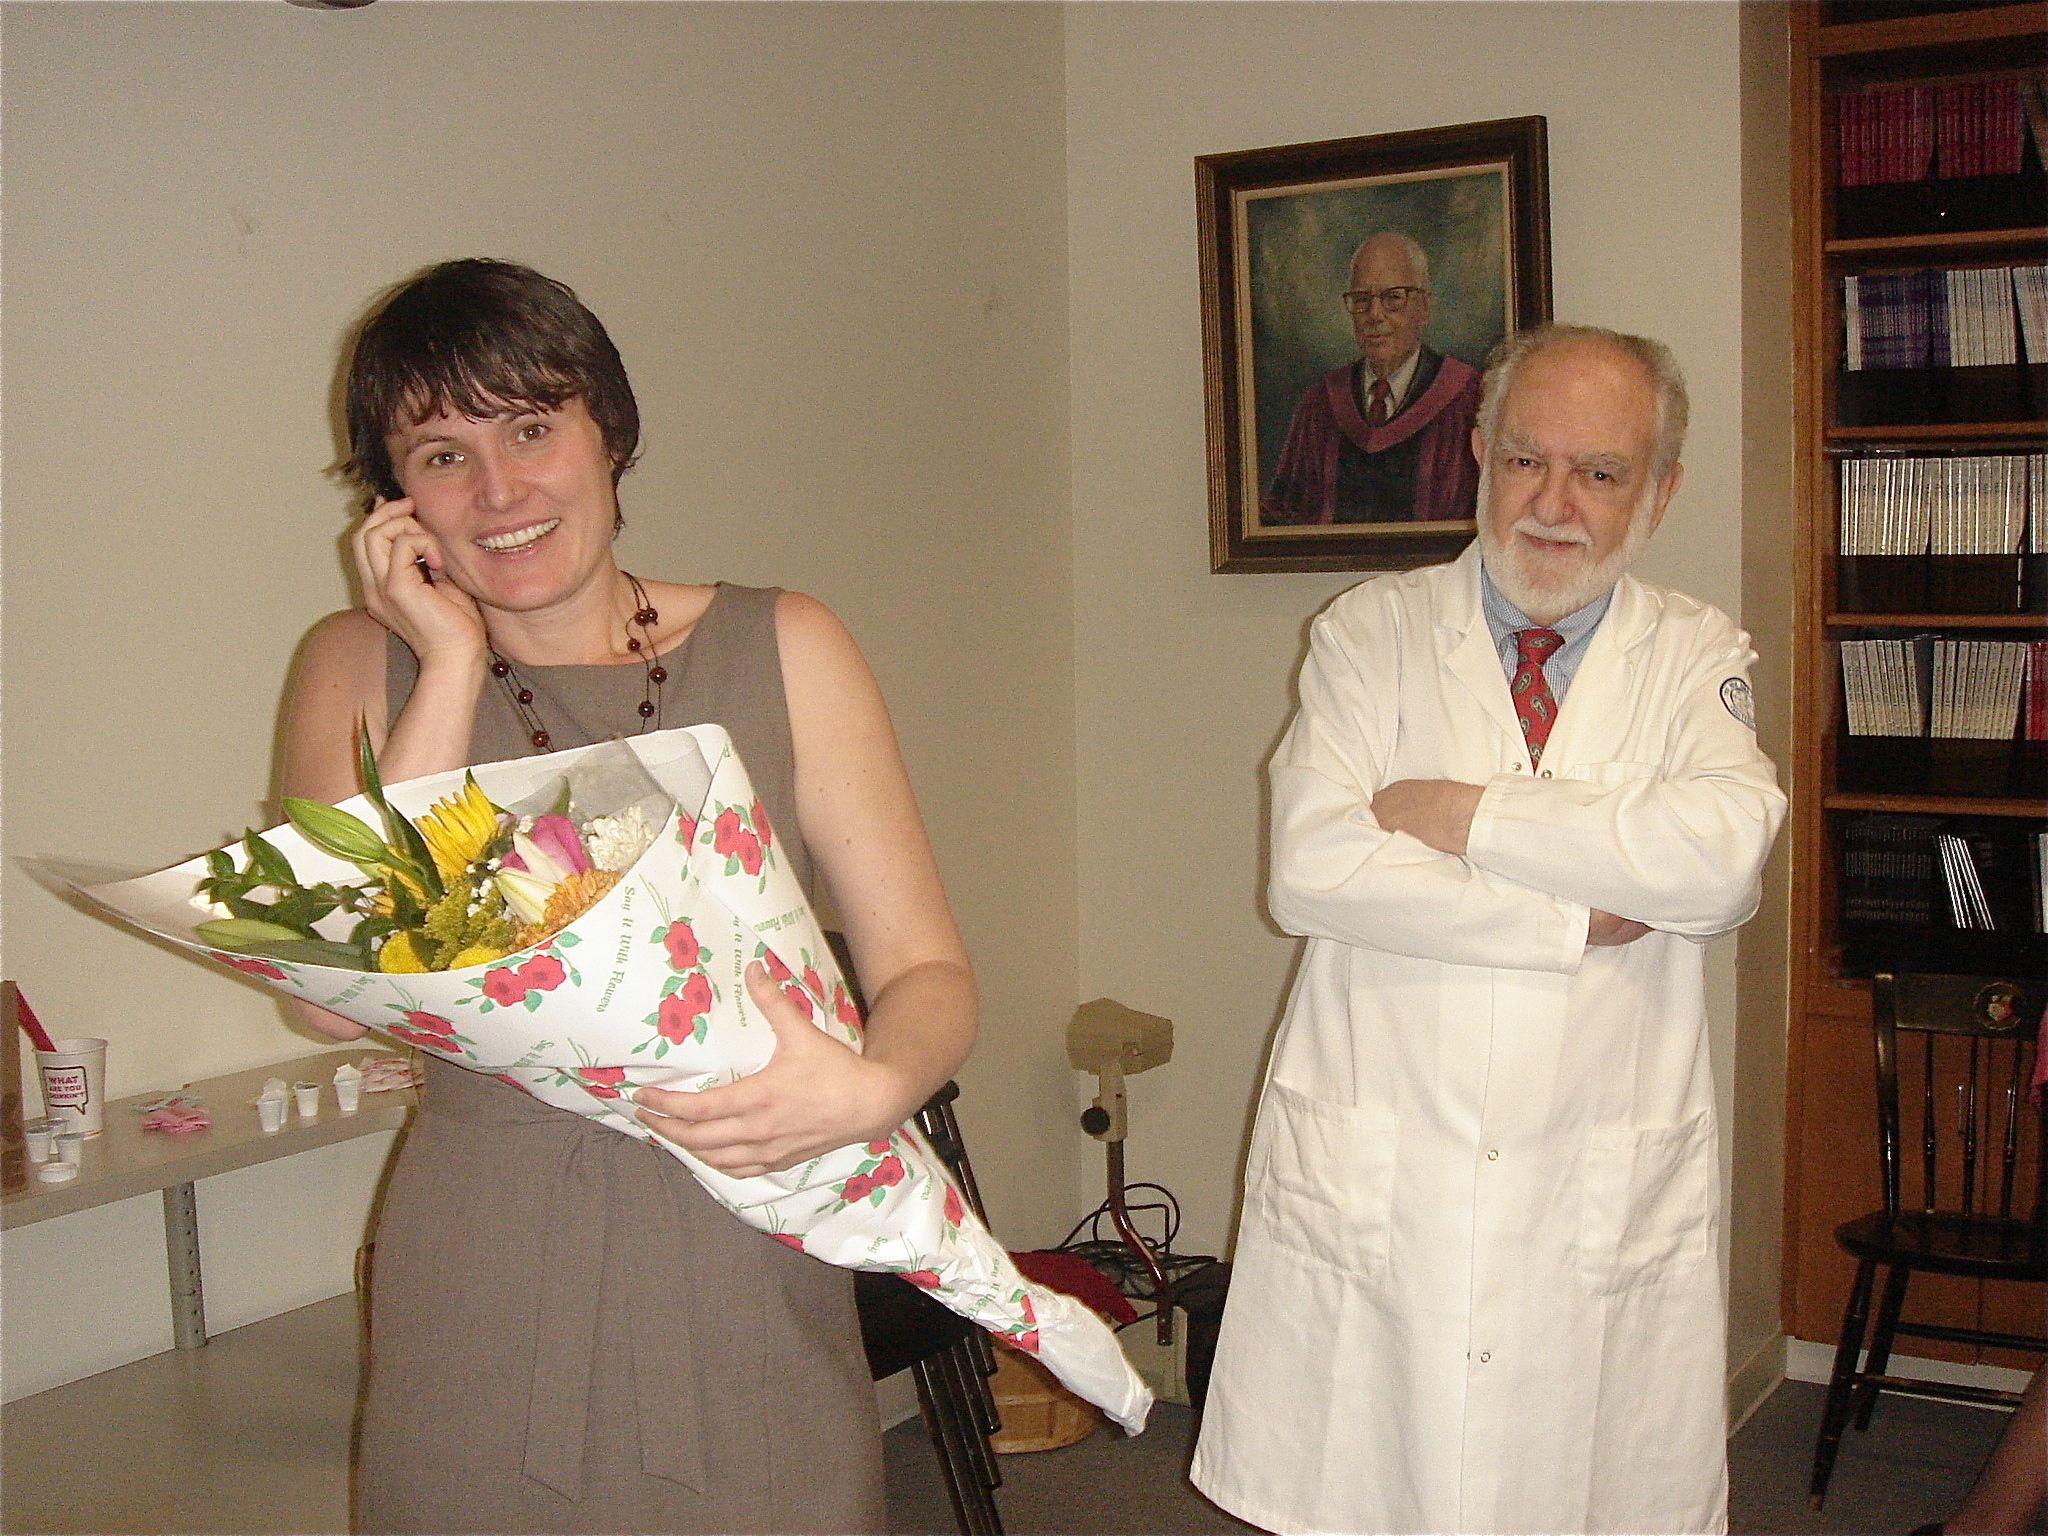 Kasia holding flowers at her defense.